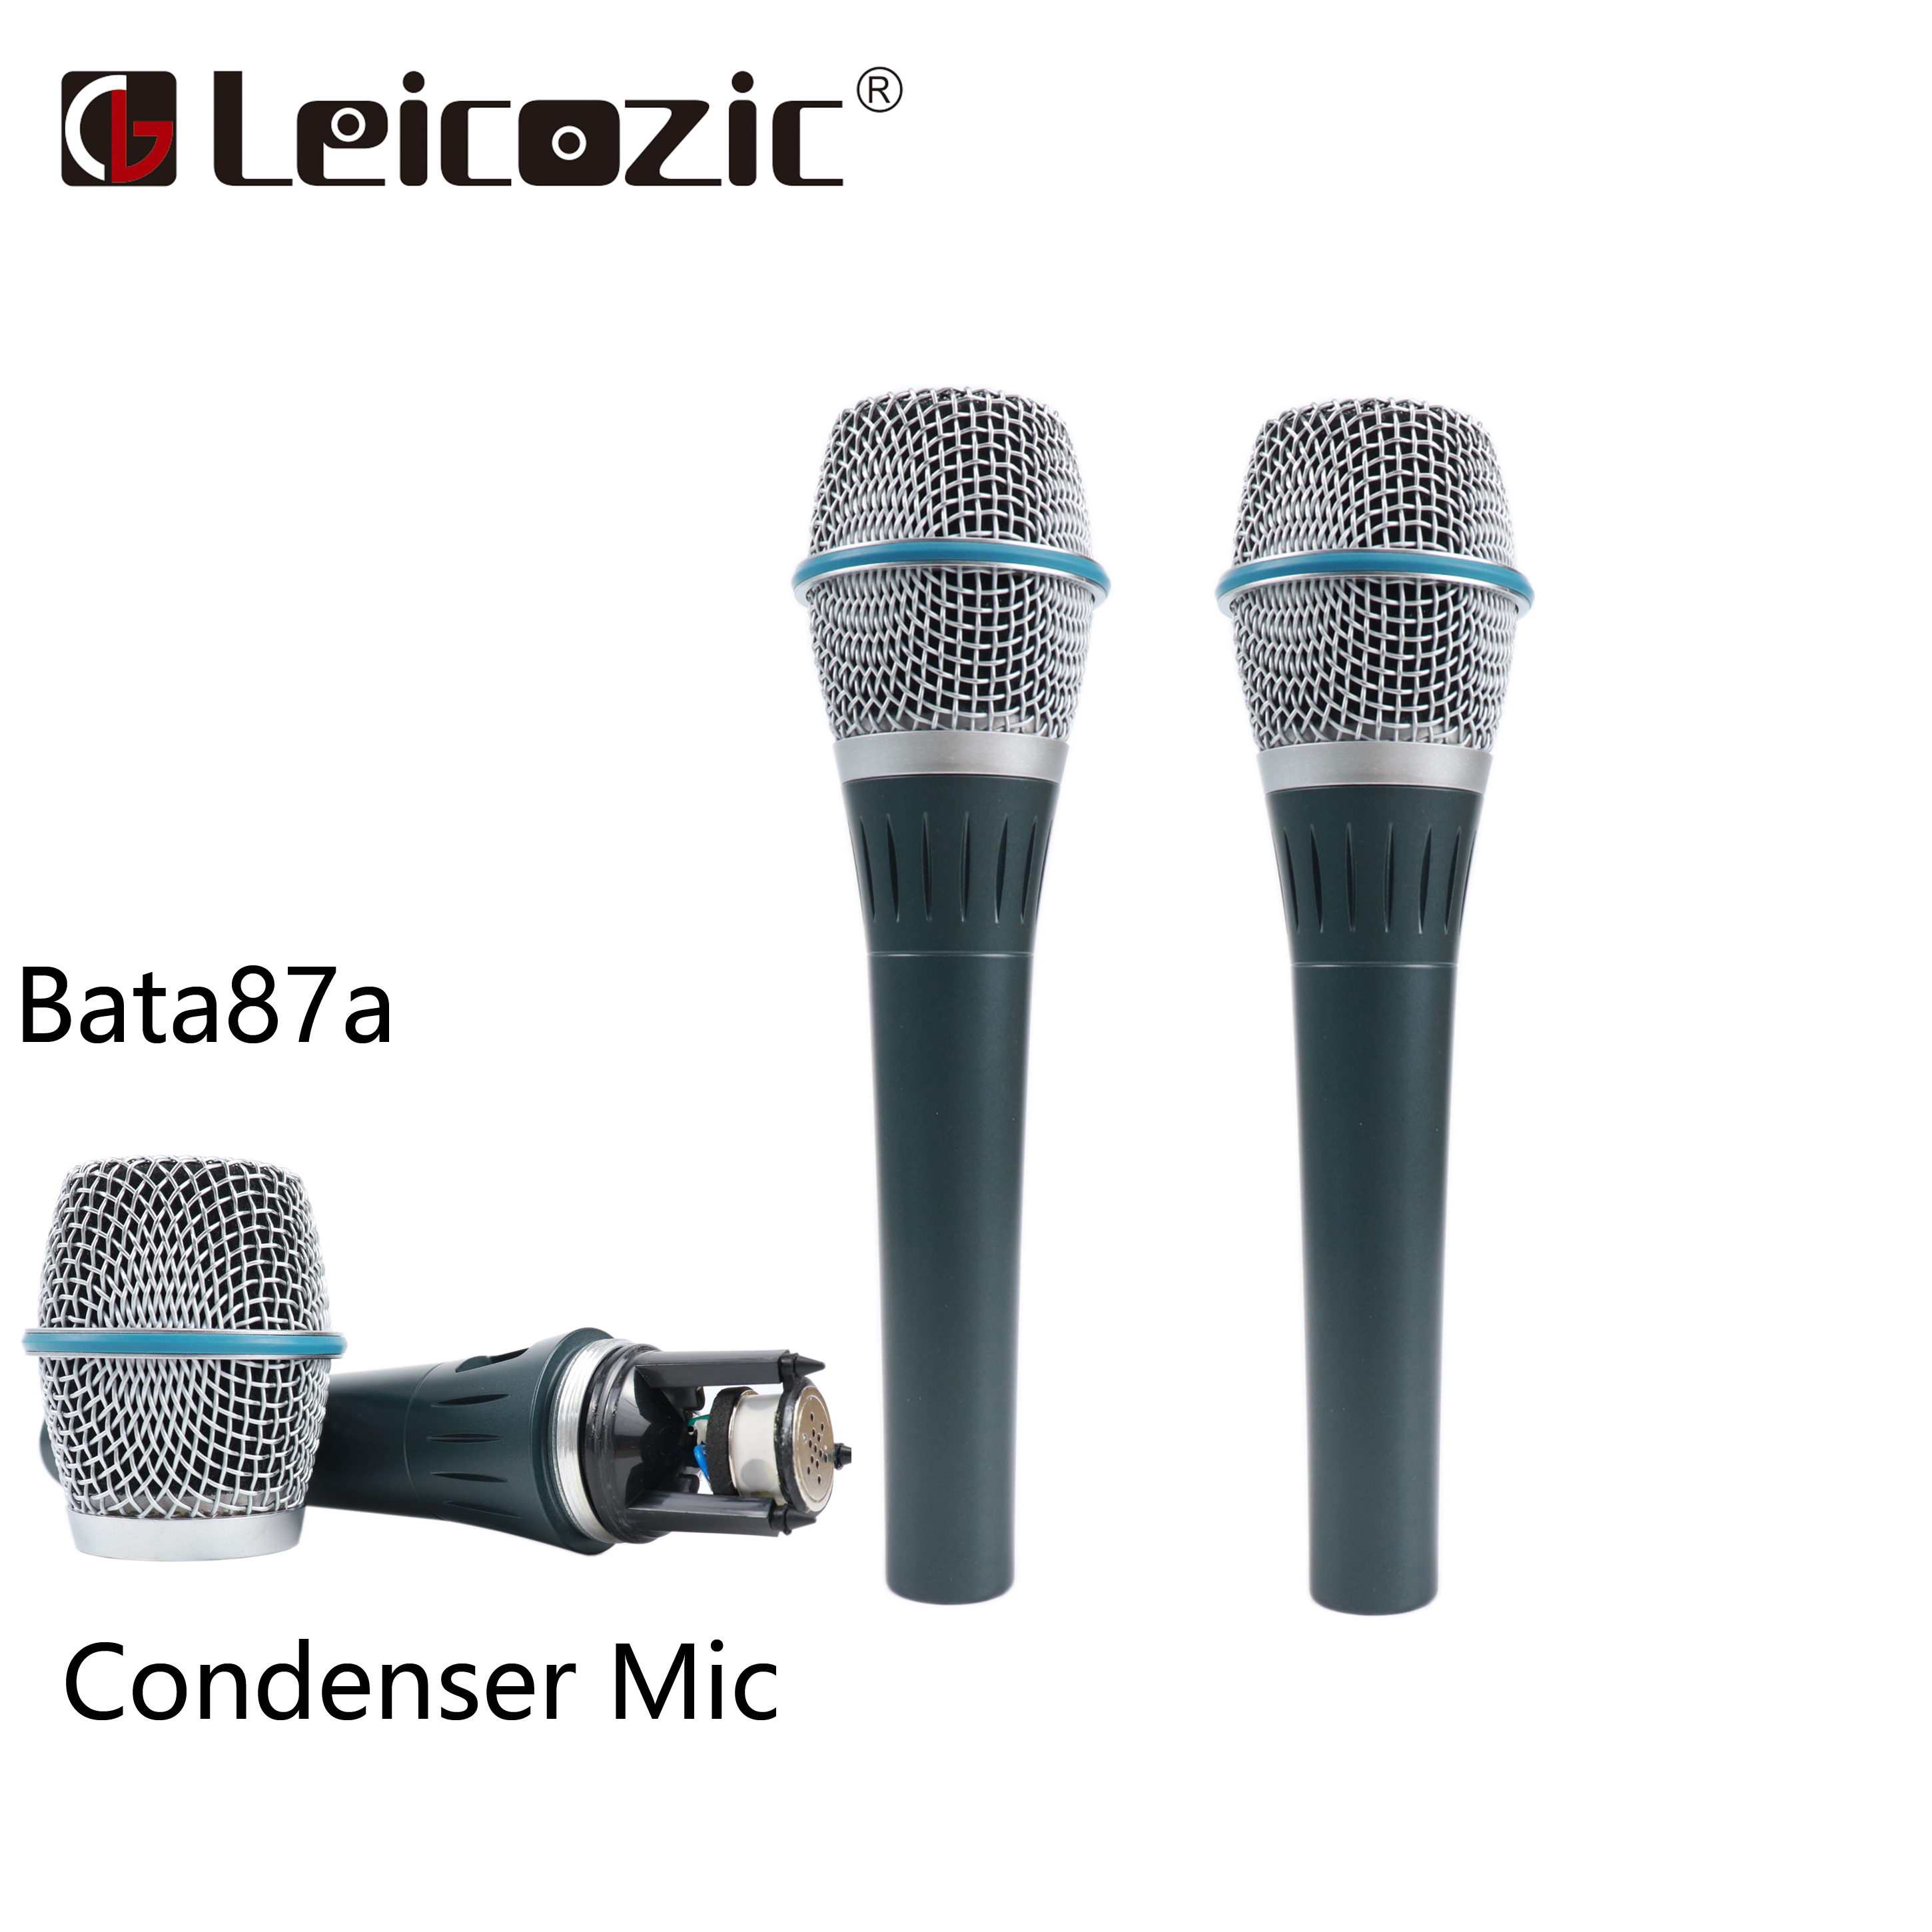 Leicozic 2Pcs BT87A 87A Supercardioid Condenser Handheld Microphone for Vocal Microphone Wired Condenser Microfone Free Shipping